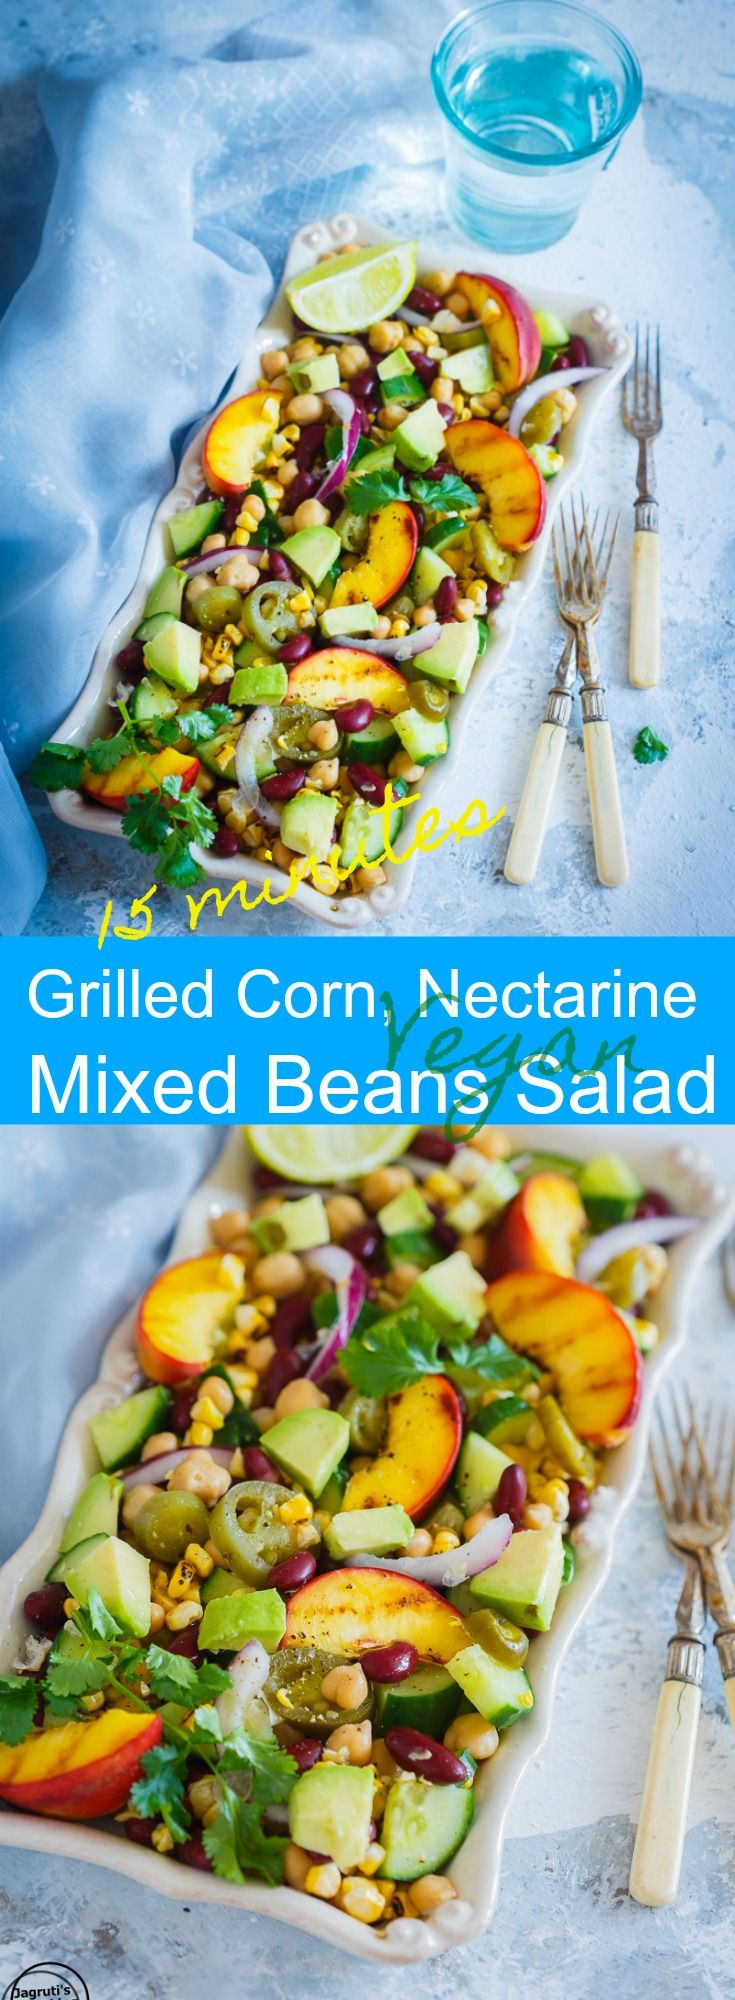 Grilled corn, nectarine and mixed beans salad